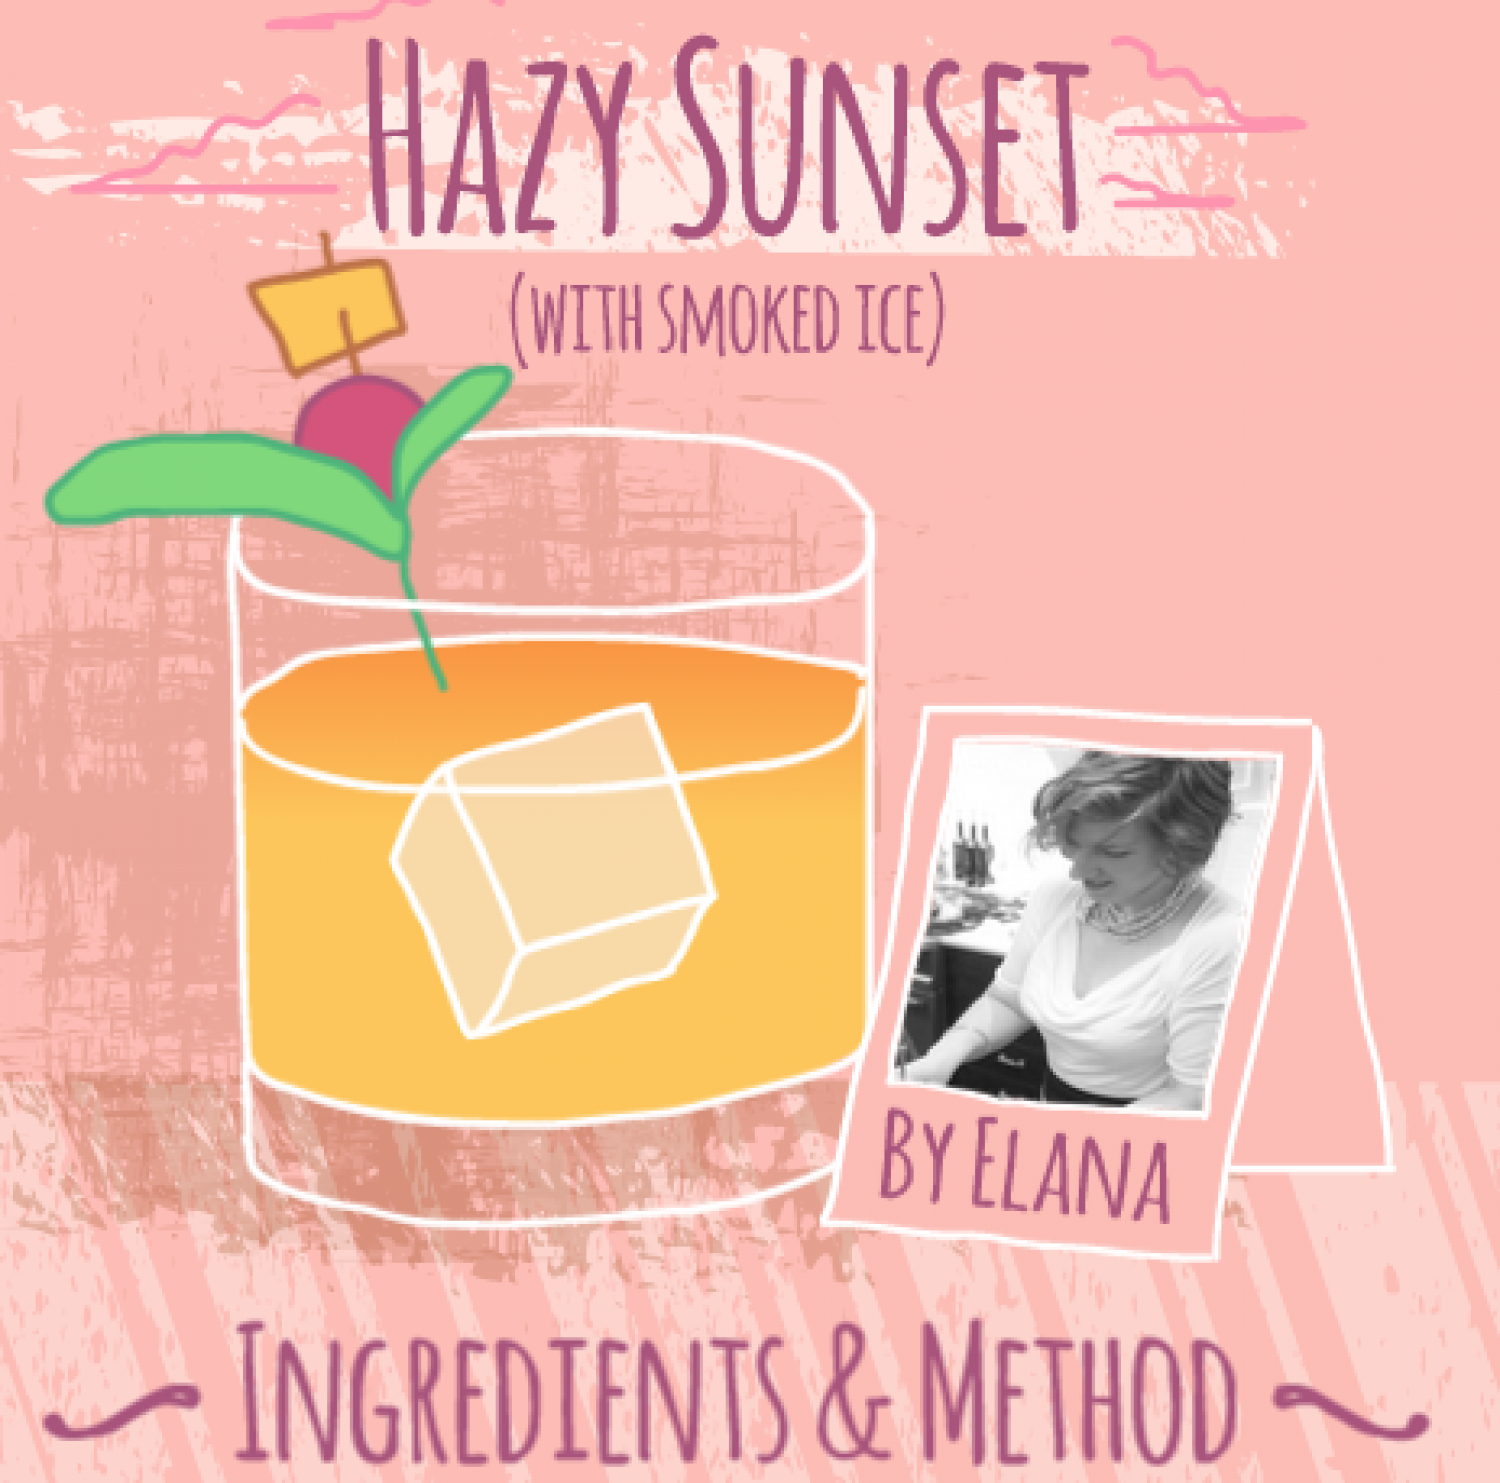 Cocktail Favourites: Hazy Sunset with Smoked Ice Infographic